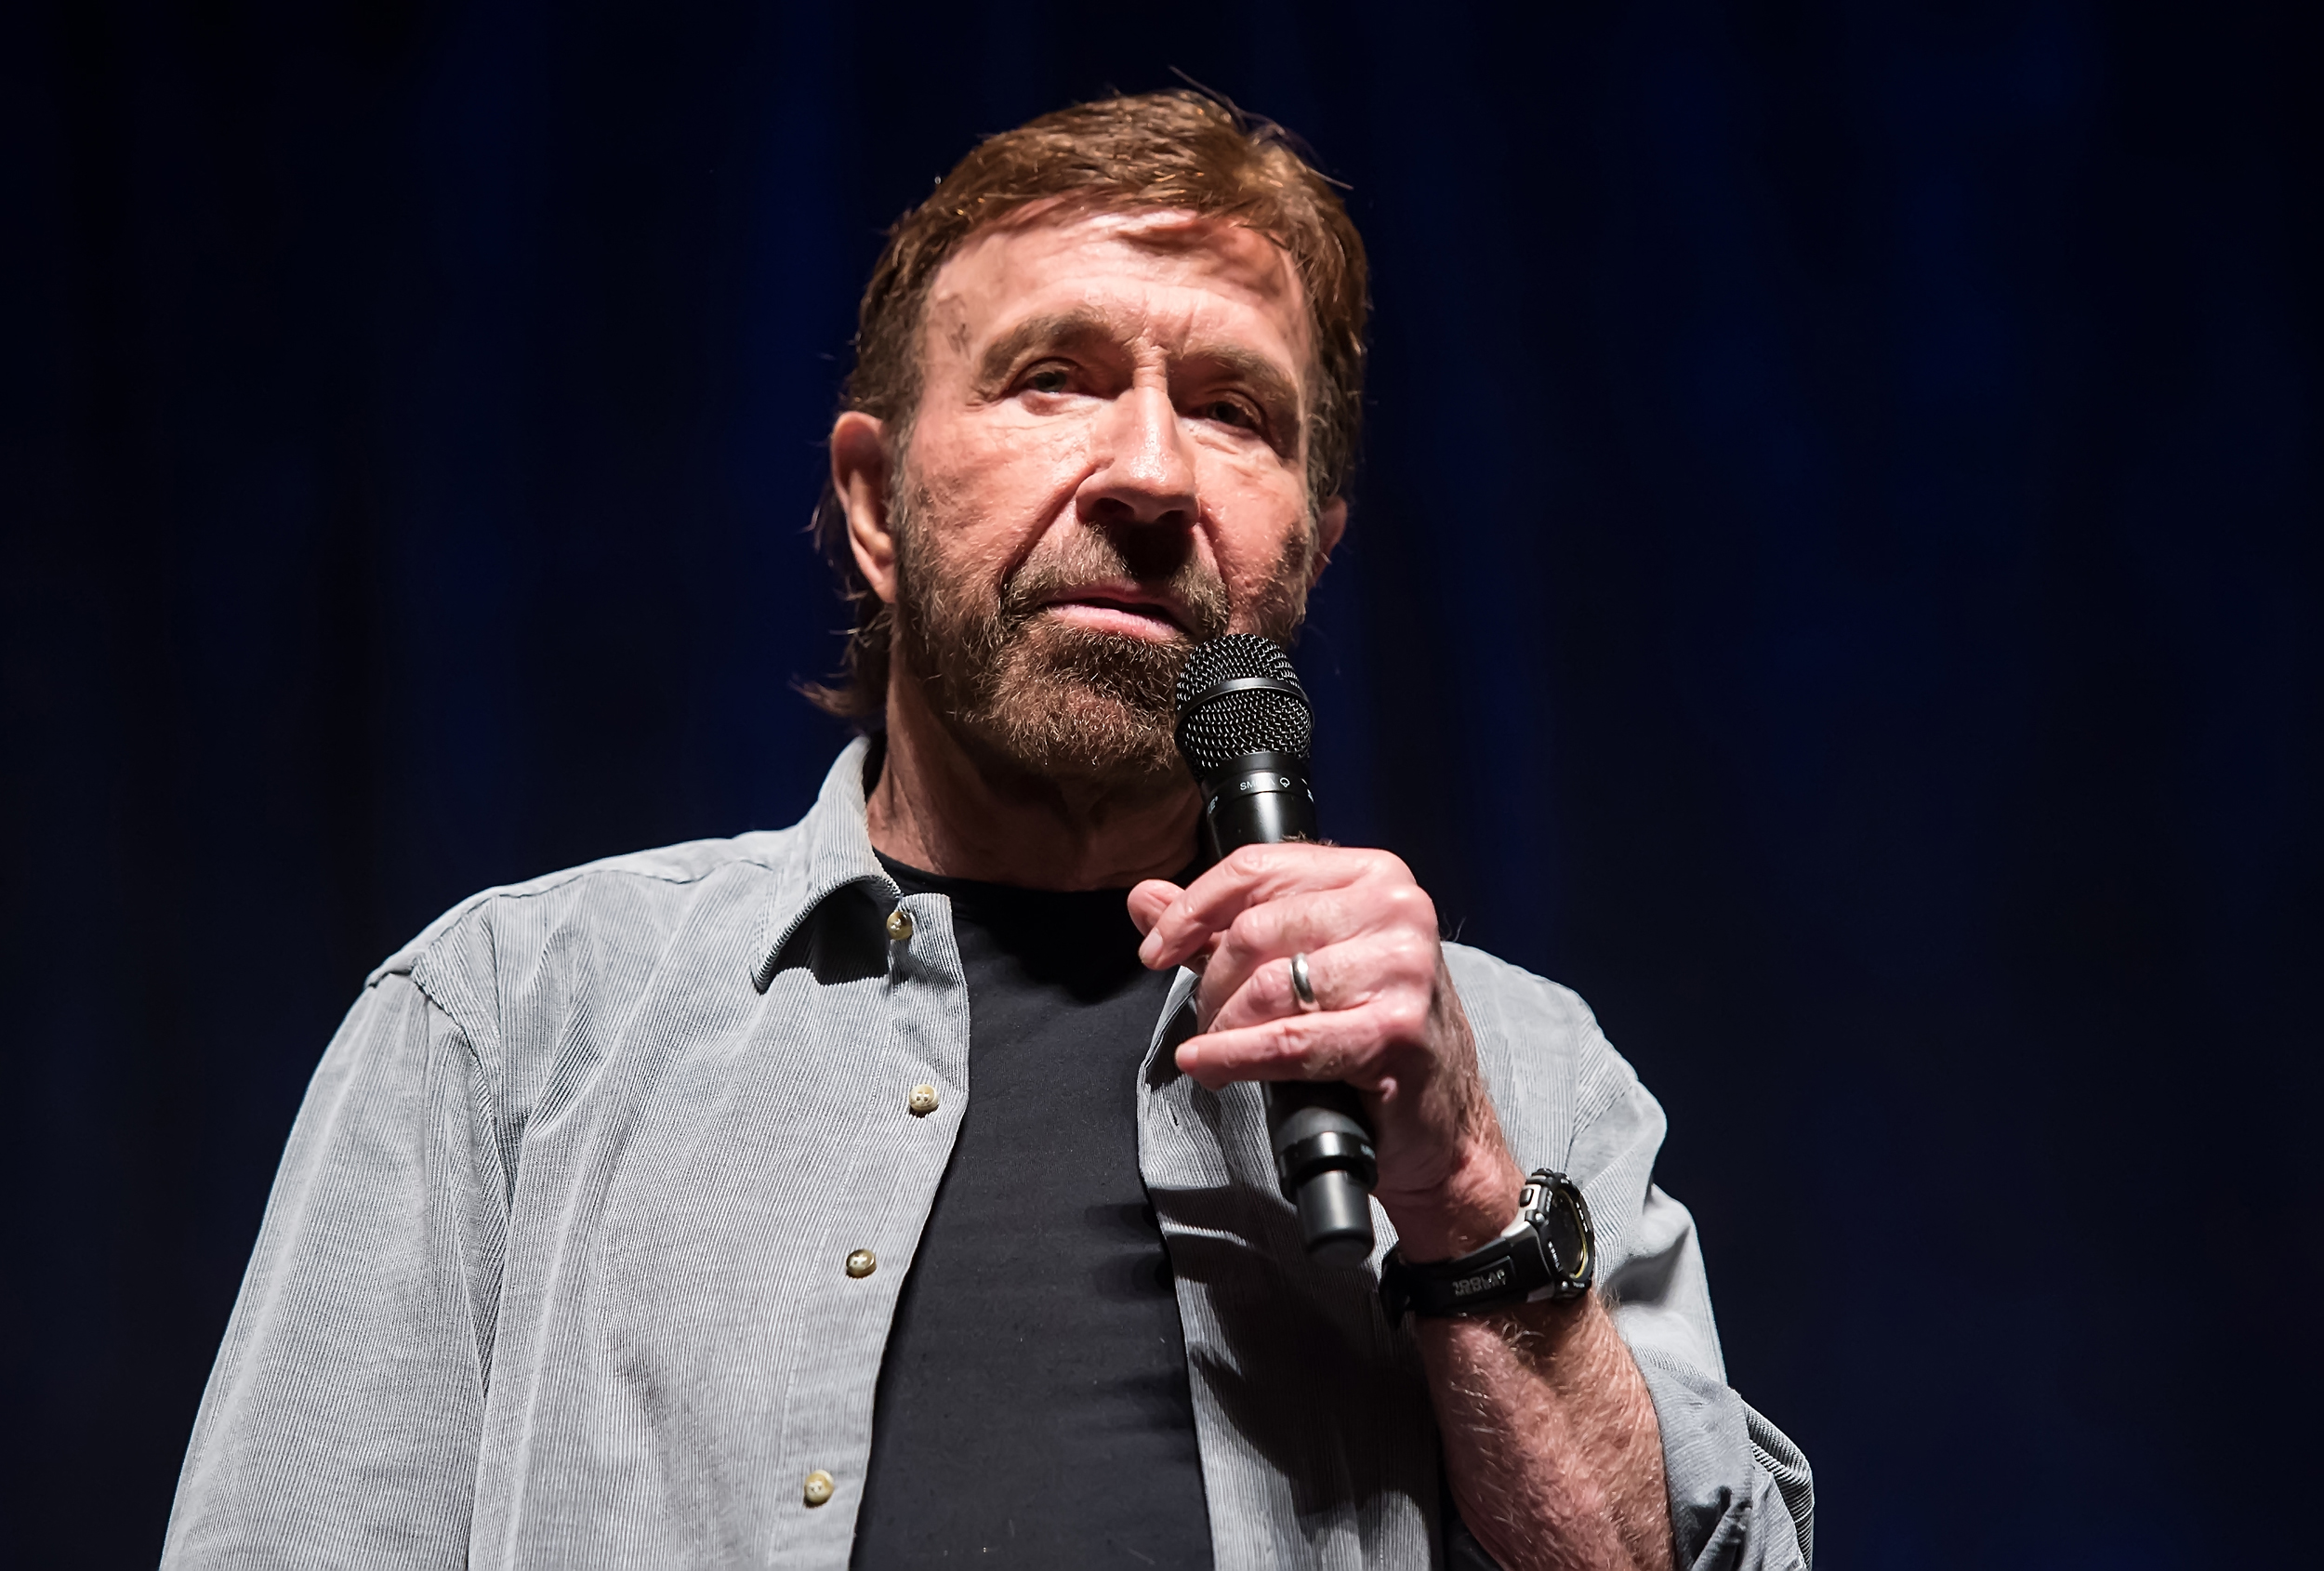 Chuck Norris was not at pro-Tump rally, viral photo was of 'look-alike,'  representative says